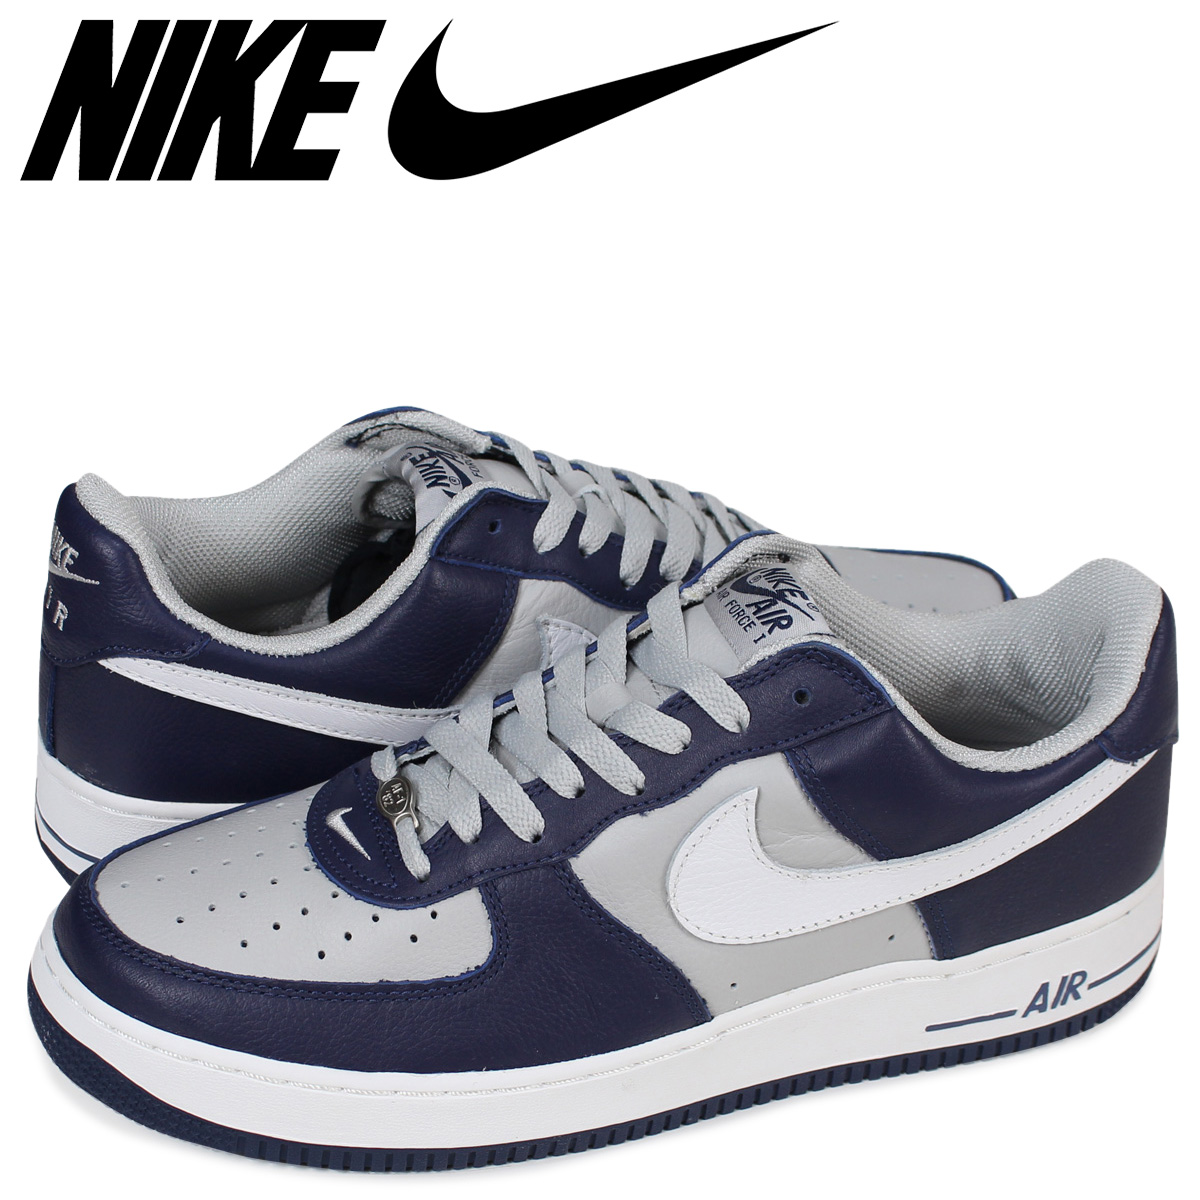 1e4904bcdd659 NIKE AIR FORCE 1 LOW Nike air force 1 sneakers 306,509-411 men's shoes navy  ...